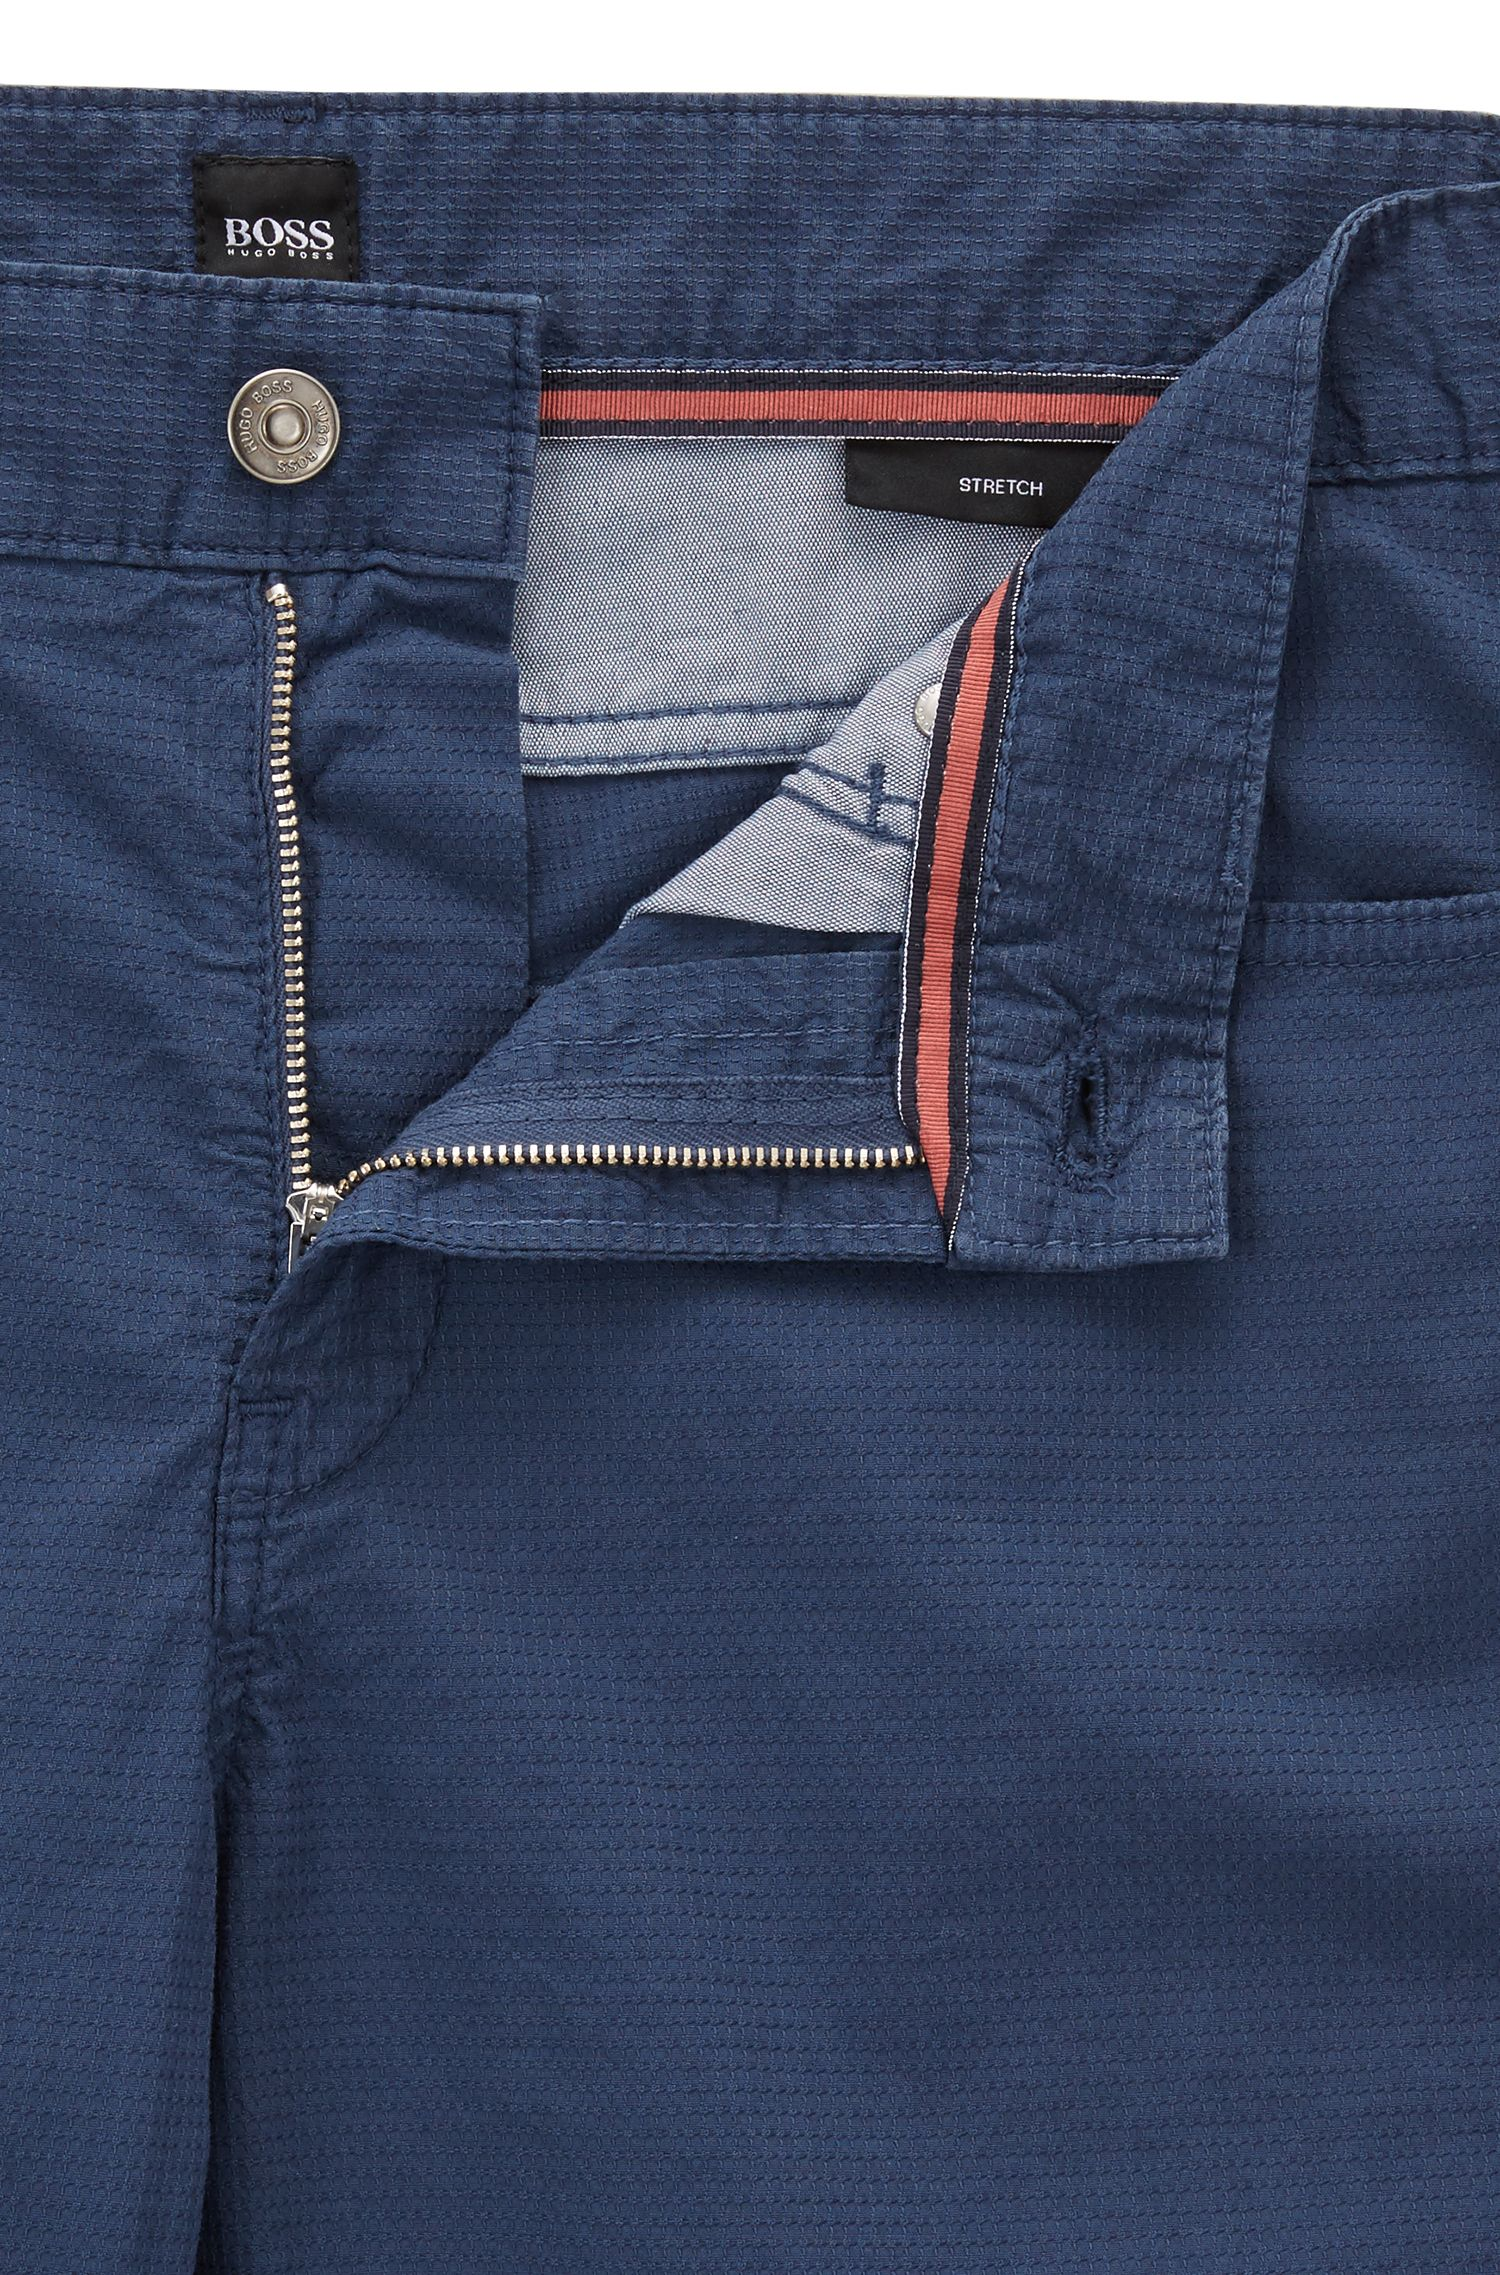 Vaqueros slim fit en denim elástico antidesgarros